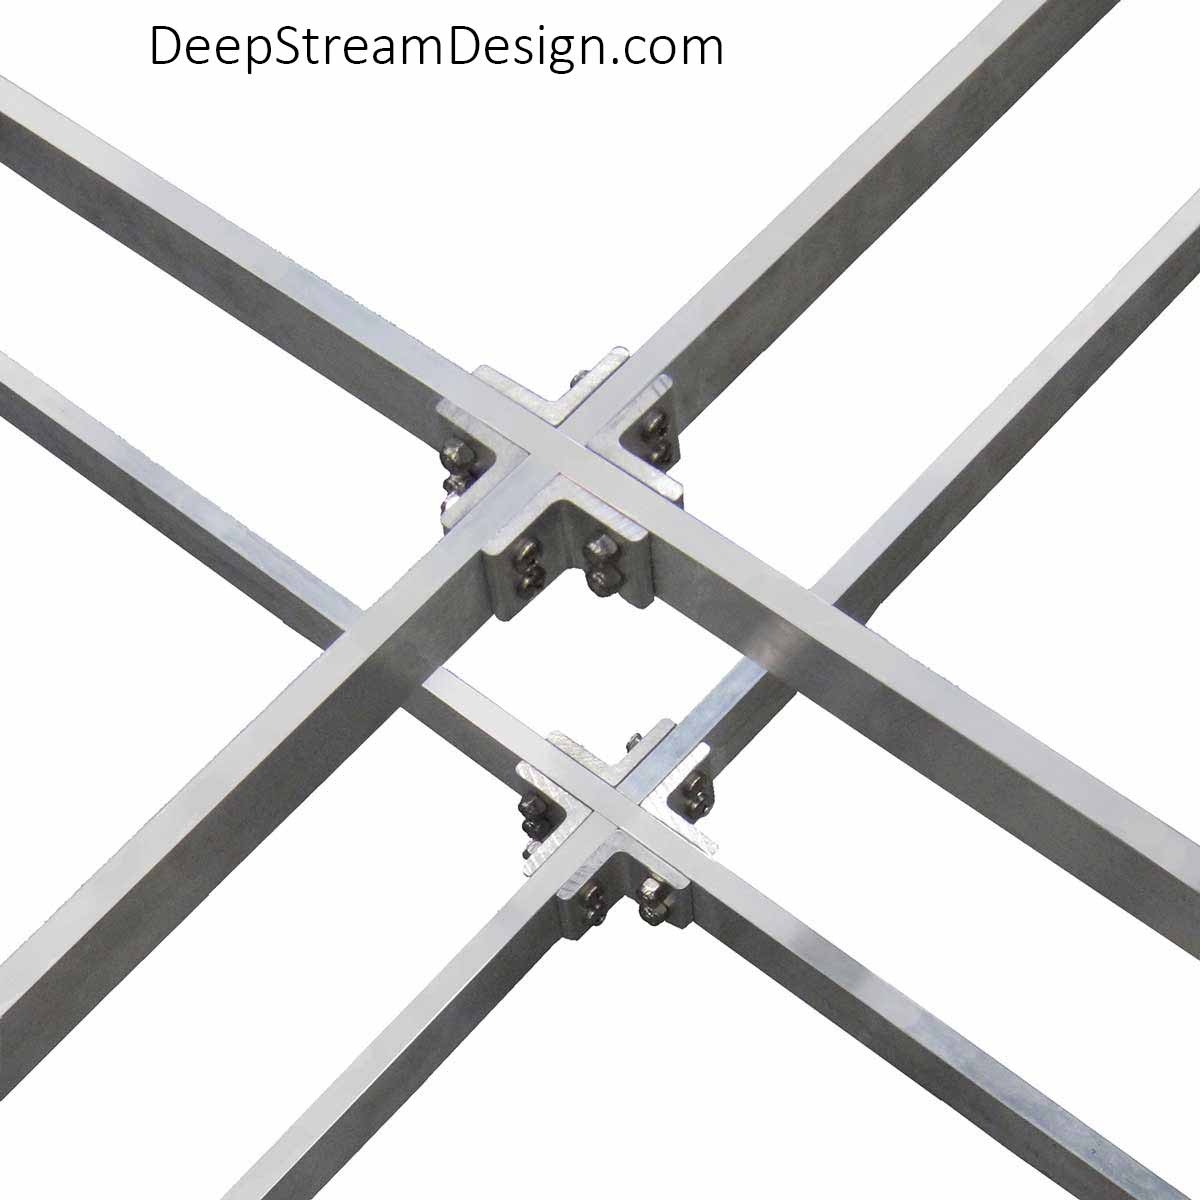 Studio photo showing the detail of the double aluminum cross bracing joins DeepStream's trademark proprietary structural aluminum frame.